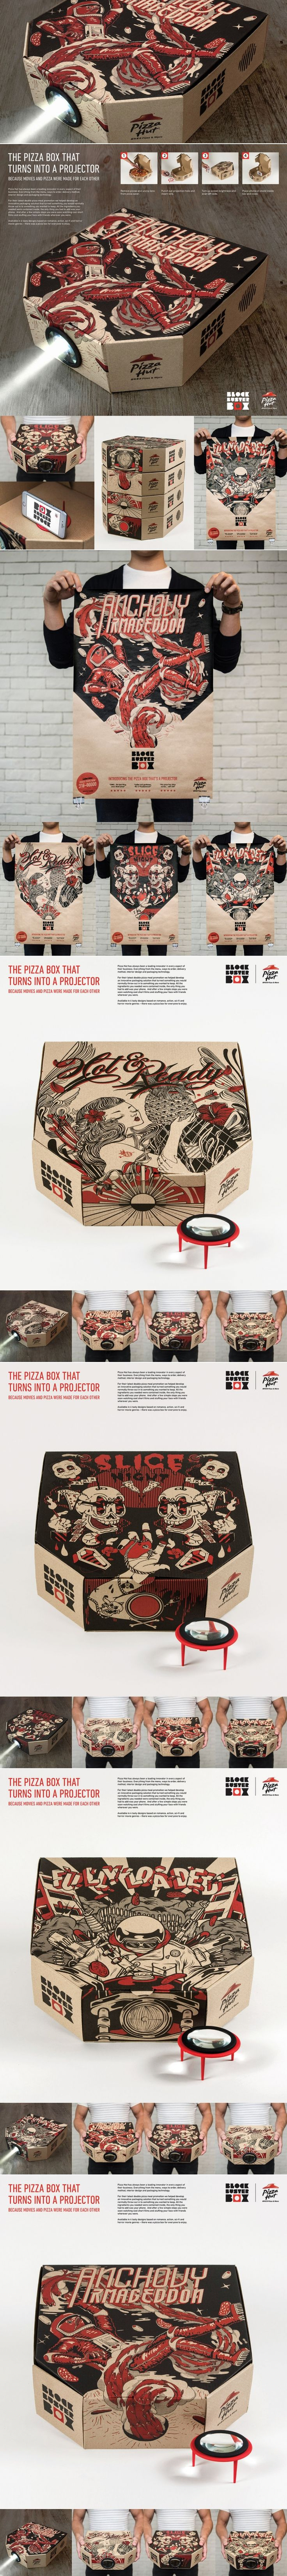 Pizza Hut Blockbuster Box — The Dieline | Packaging & Branding Design & Innovation News